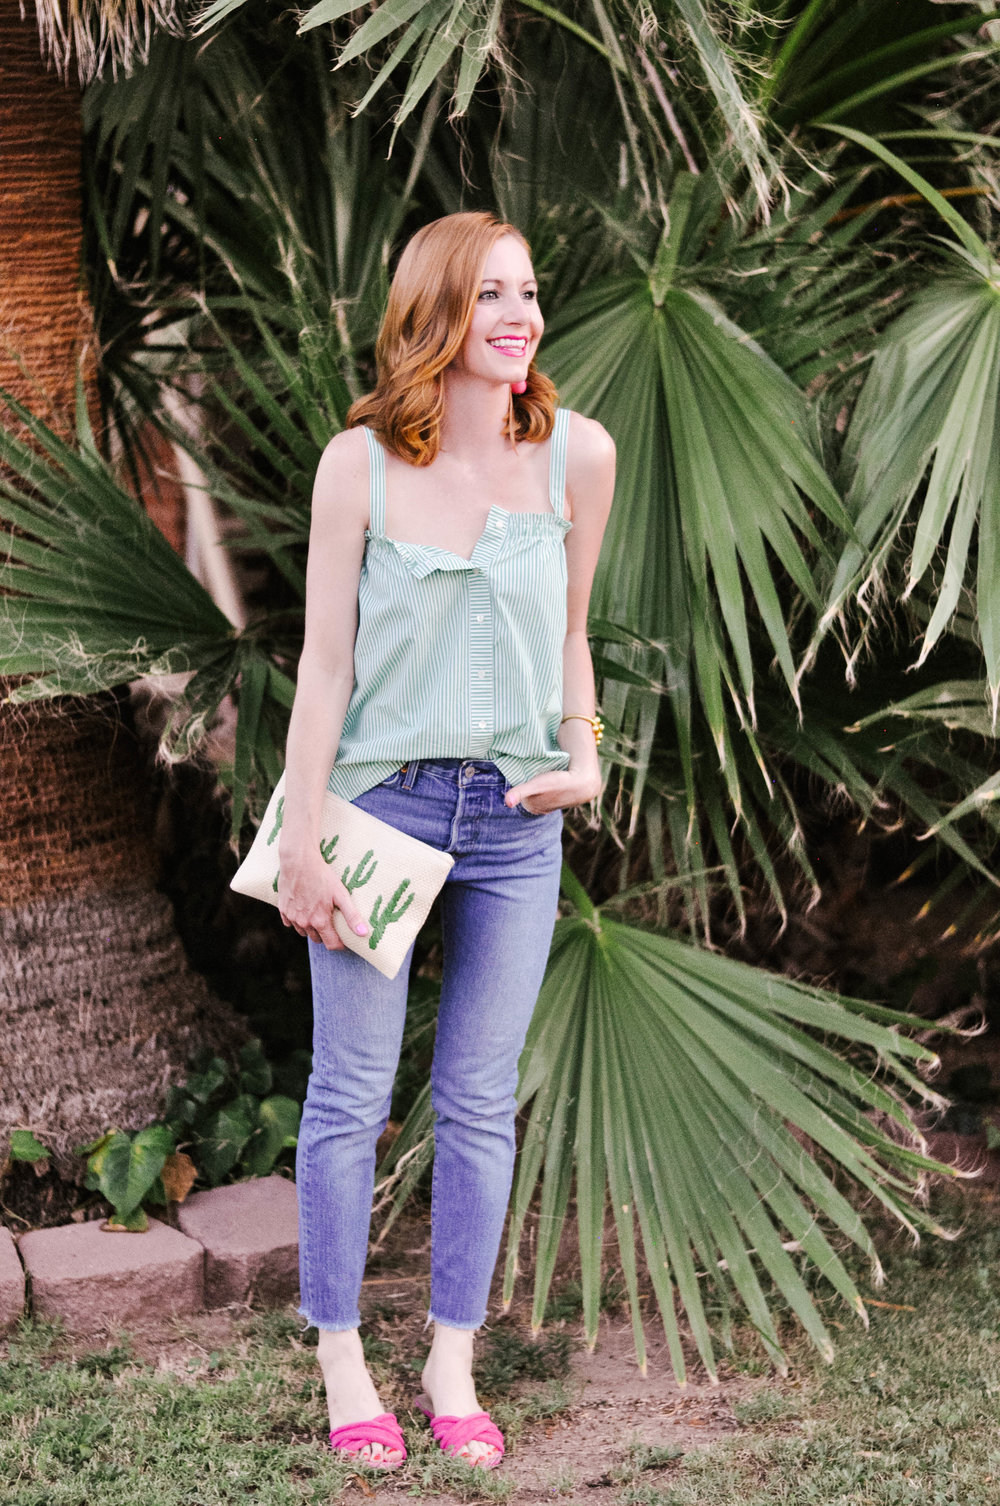 Redhead Woman Smiling in Casual Summer Outfit